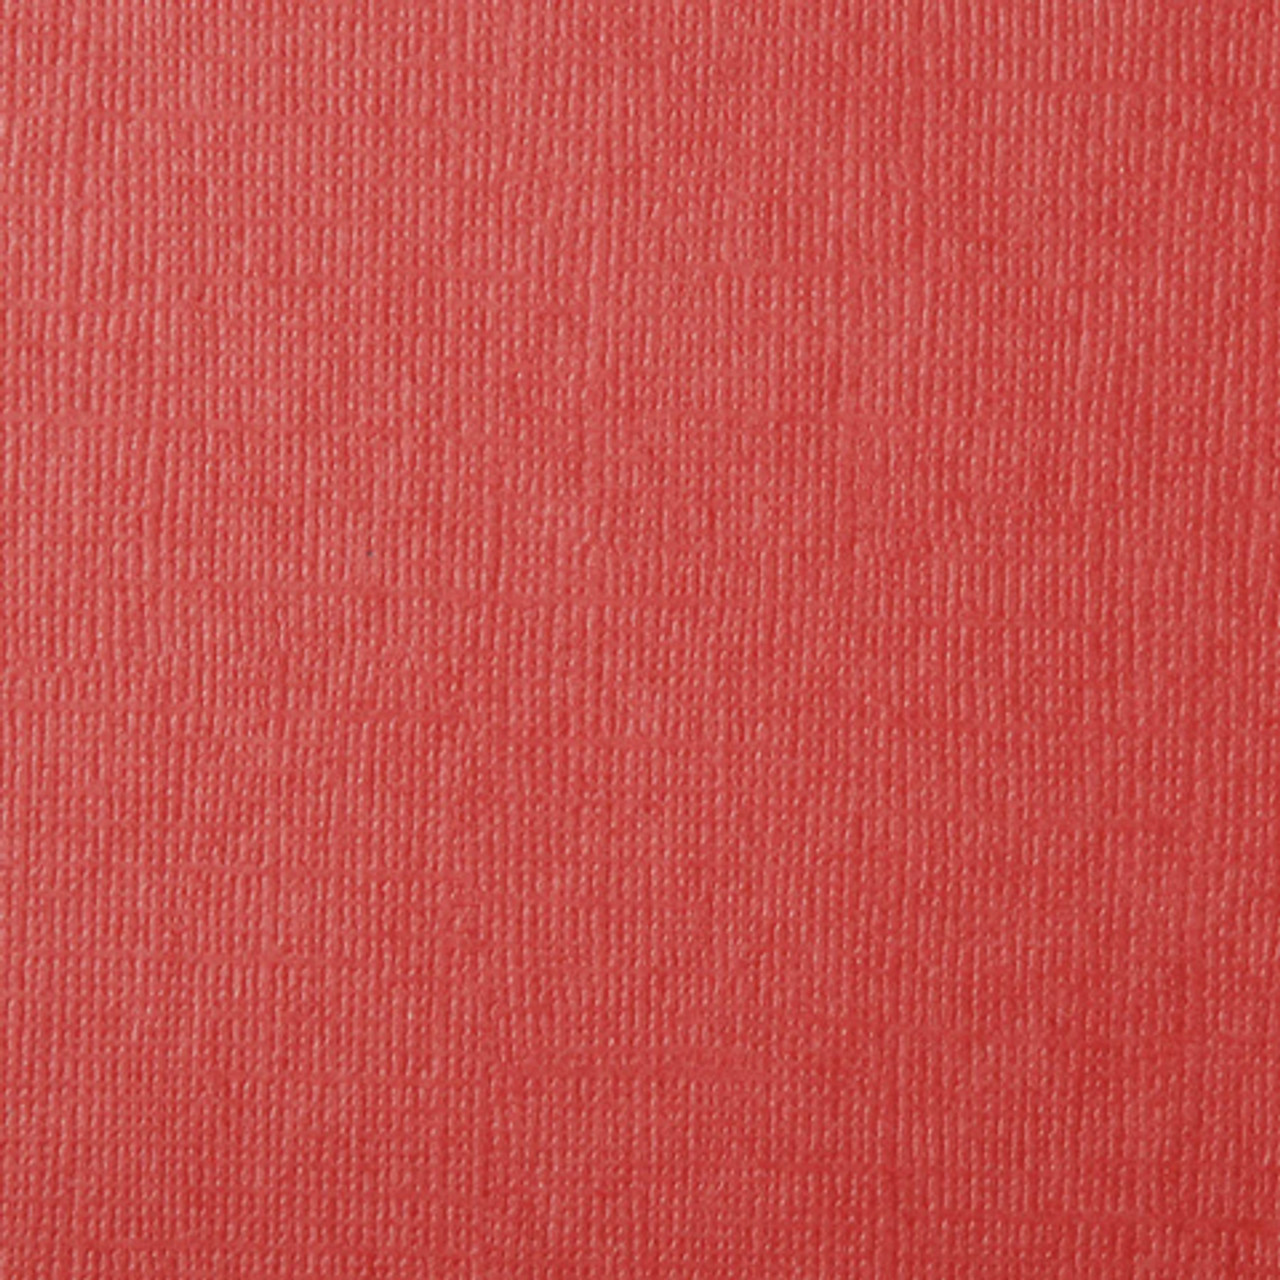 Core'dinations Collection Core Foundations Redbud 12 x 12 Cardstock by Core'dinations